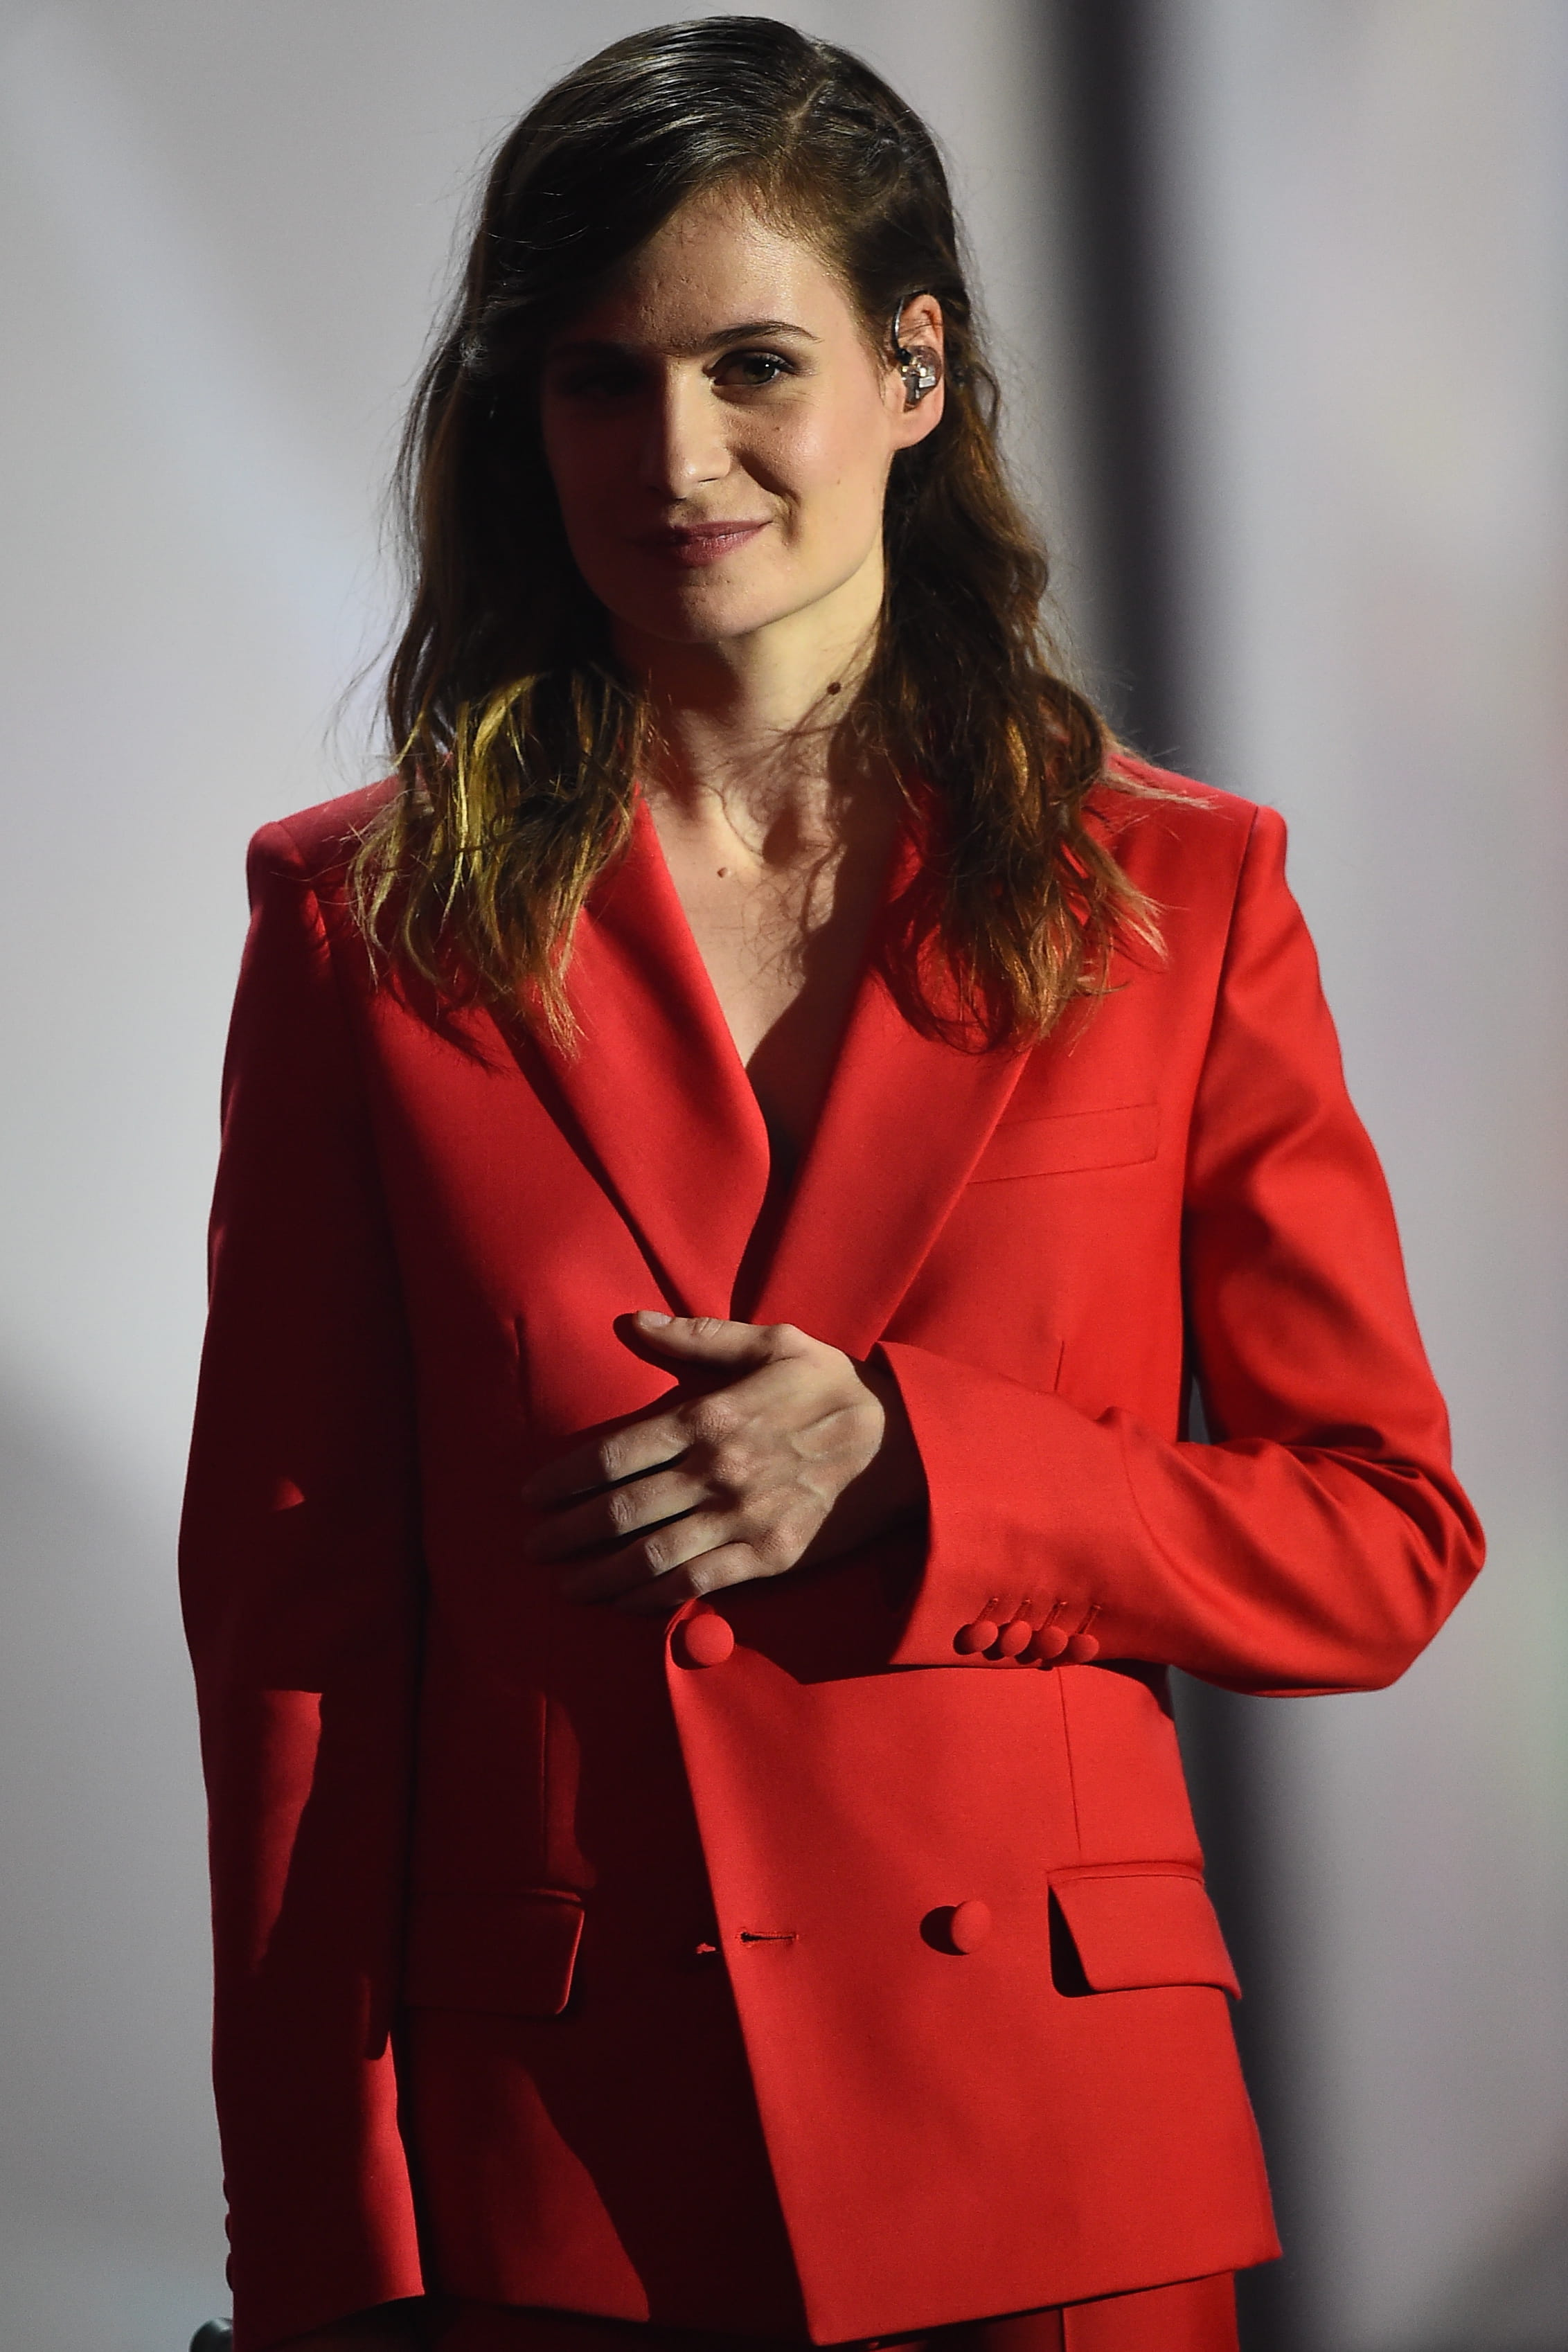 christine and the queens reine pas princesse tops et flops le meilleur de la semaine people. Black Bedroom Furniture Sets. Home Design Ideas